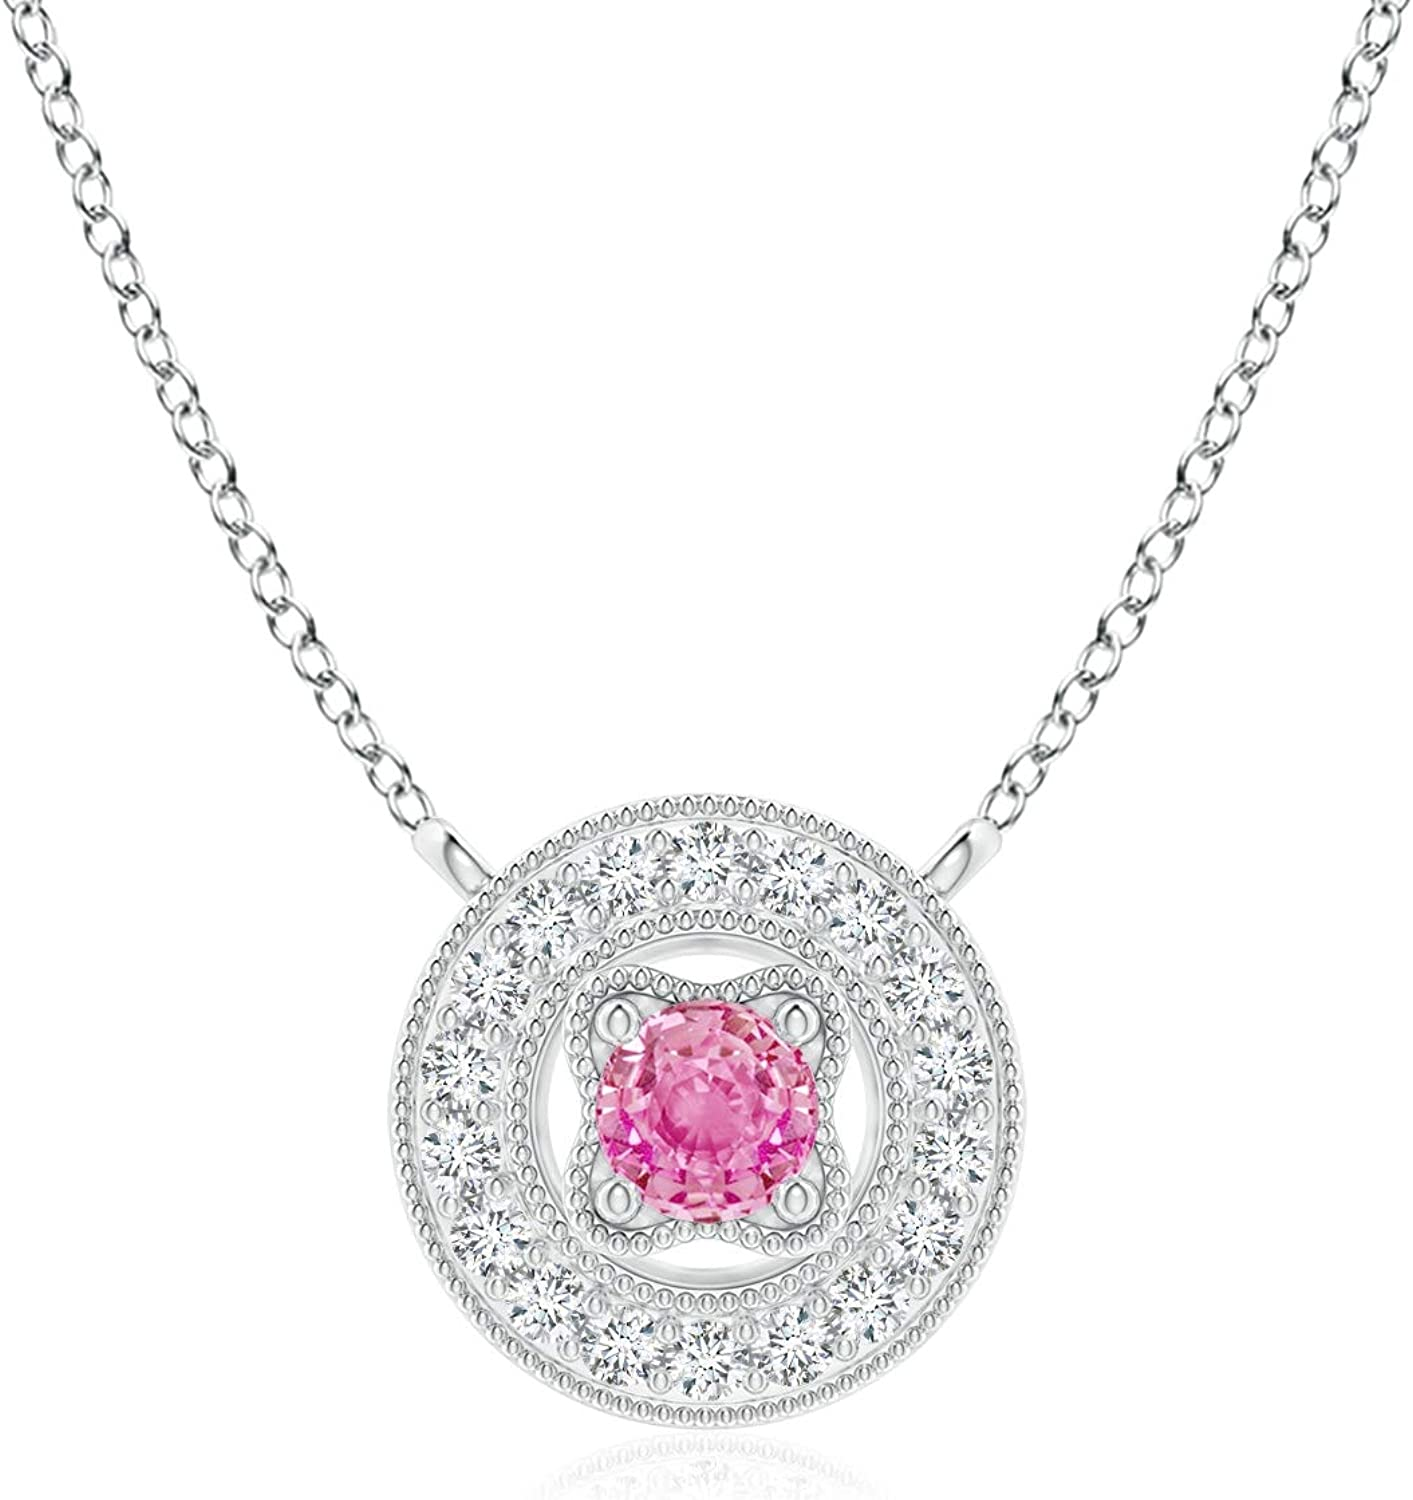 Vintage Style Pink Sapphire Halo Pendant Don't Cheap sale miss the campaign 14K Wh in with Milgrain